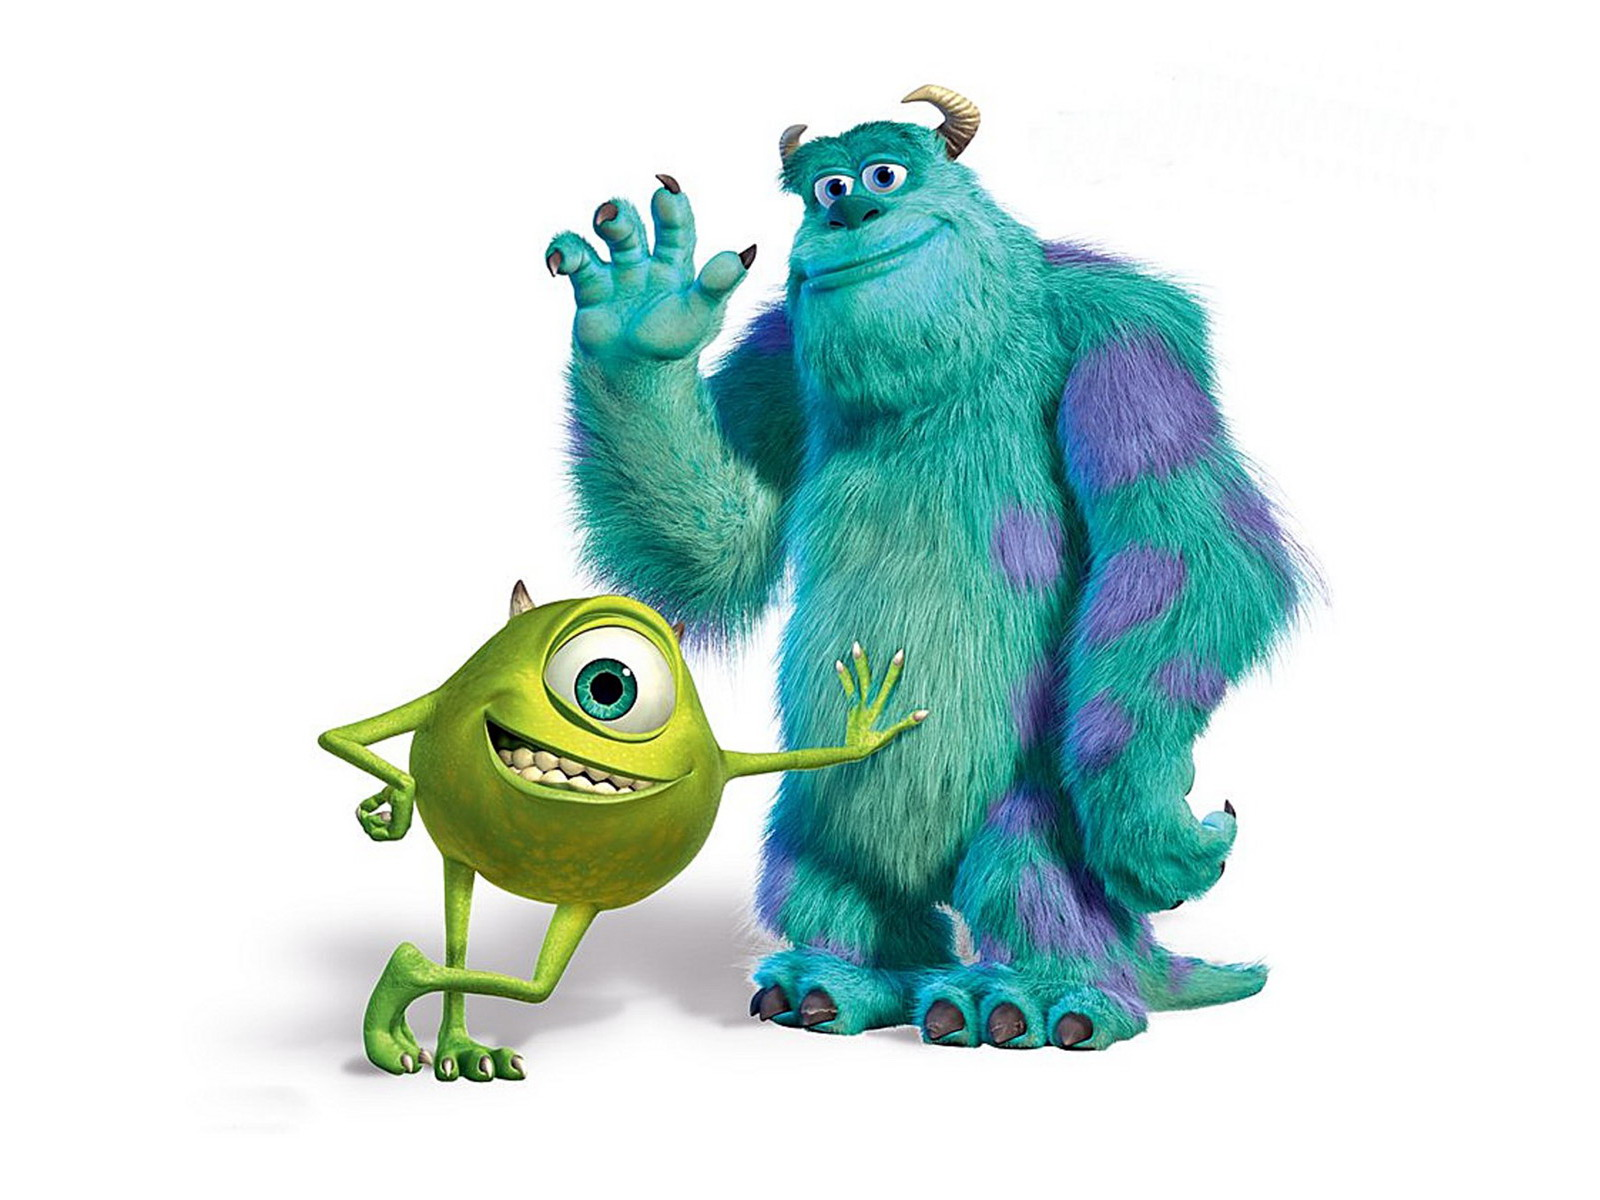 sponge bob cartoon monsters inc sulley and mike background picture 276313 wallpaper wallpaper cool wallpapers